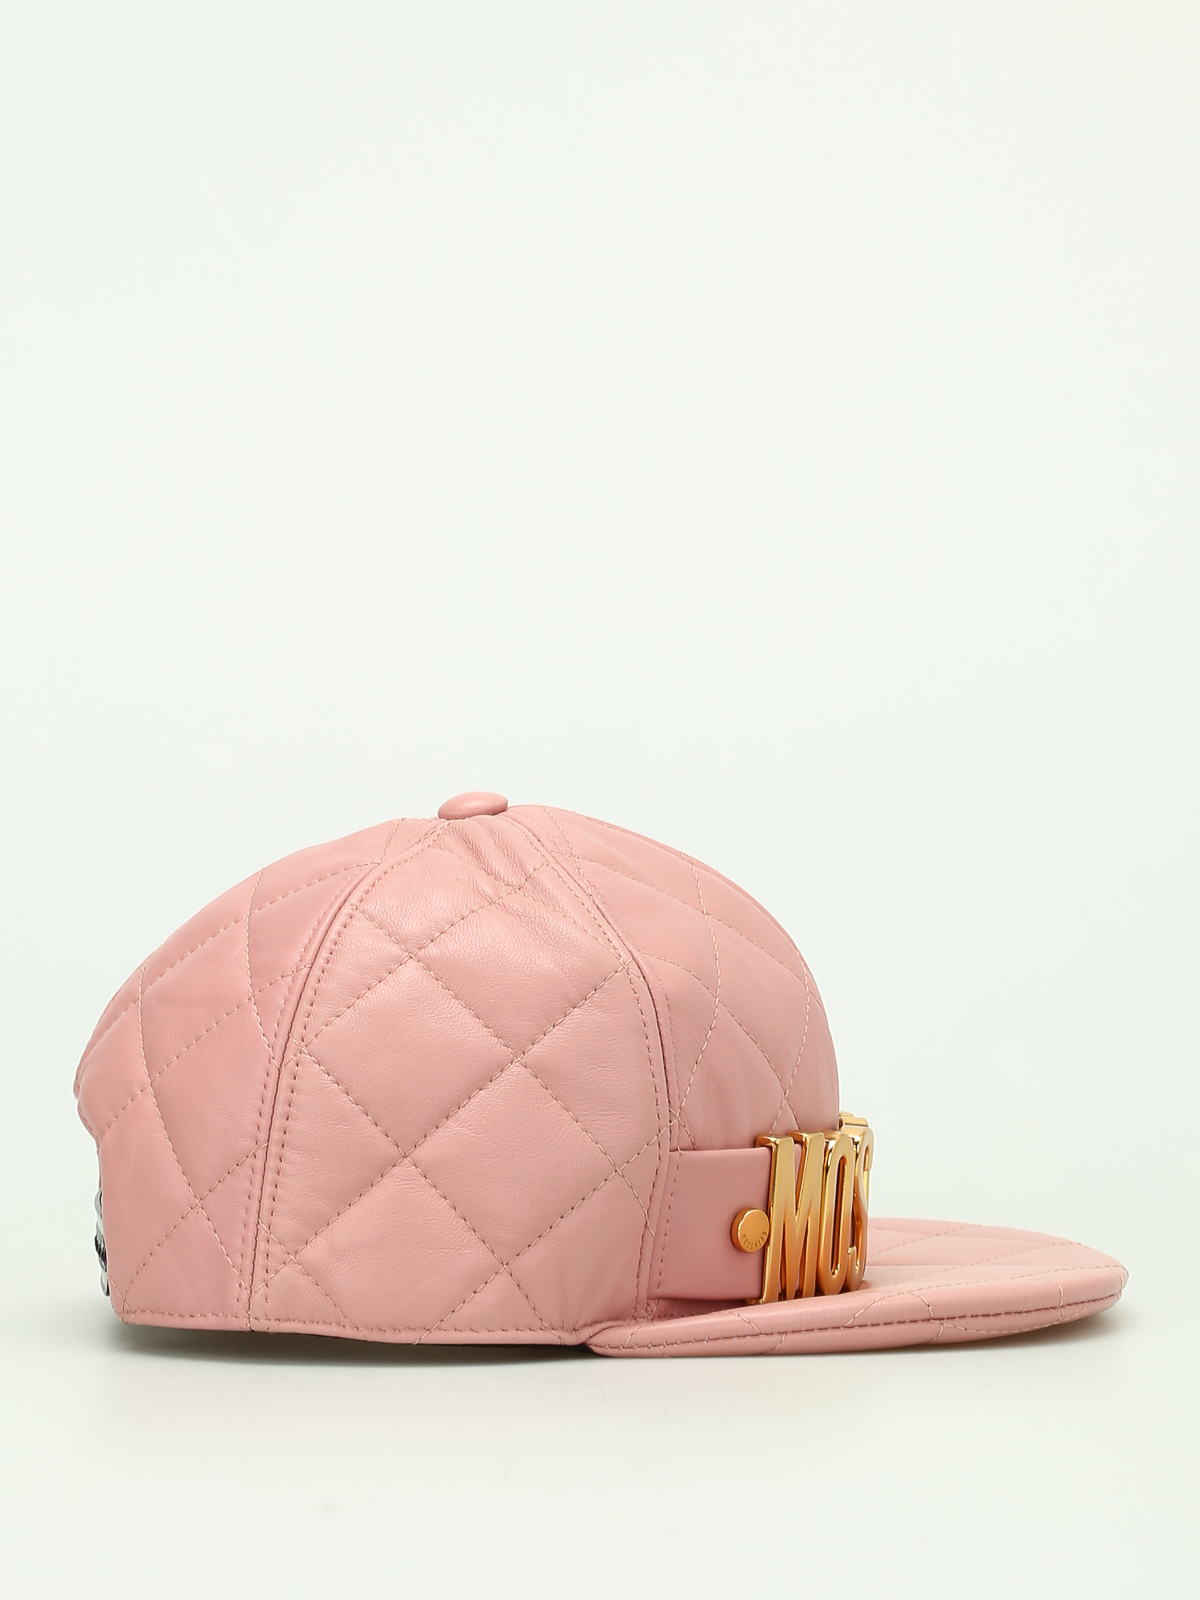 MOSCHINO  hats   caps online - Pink quilted leather hat with logo 46079c4e1ab1